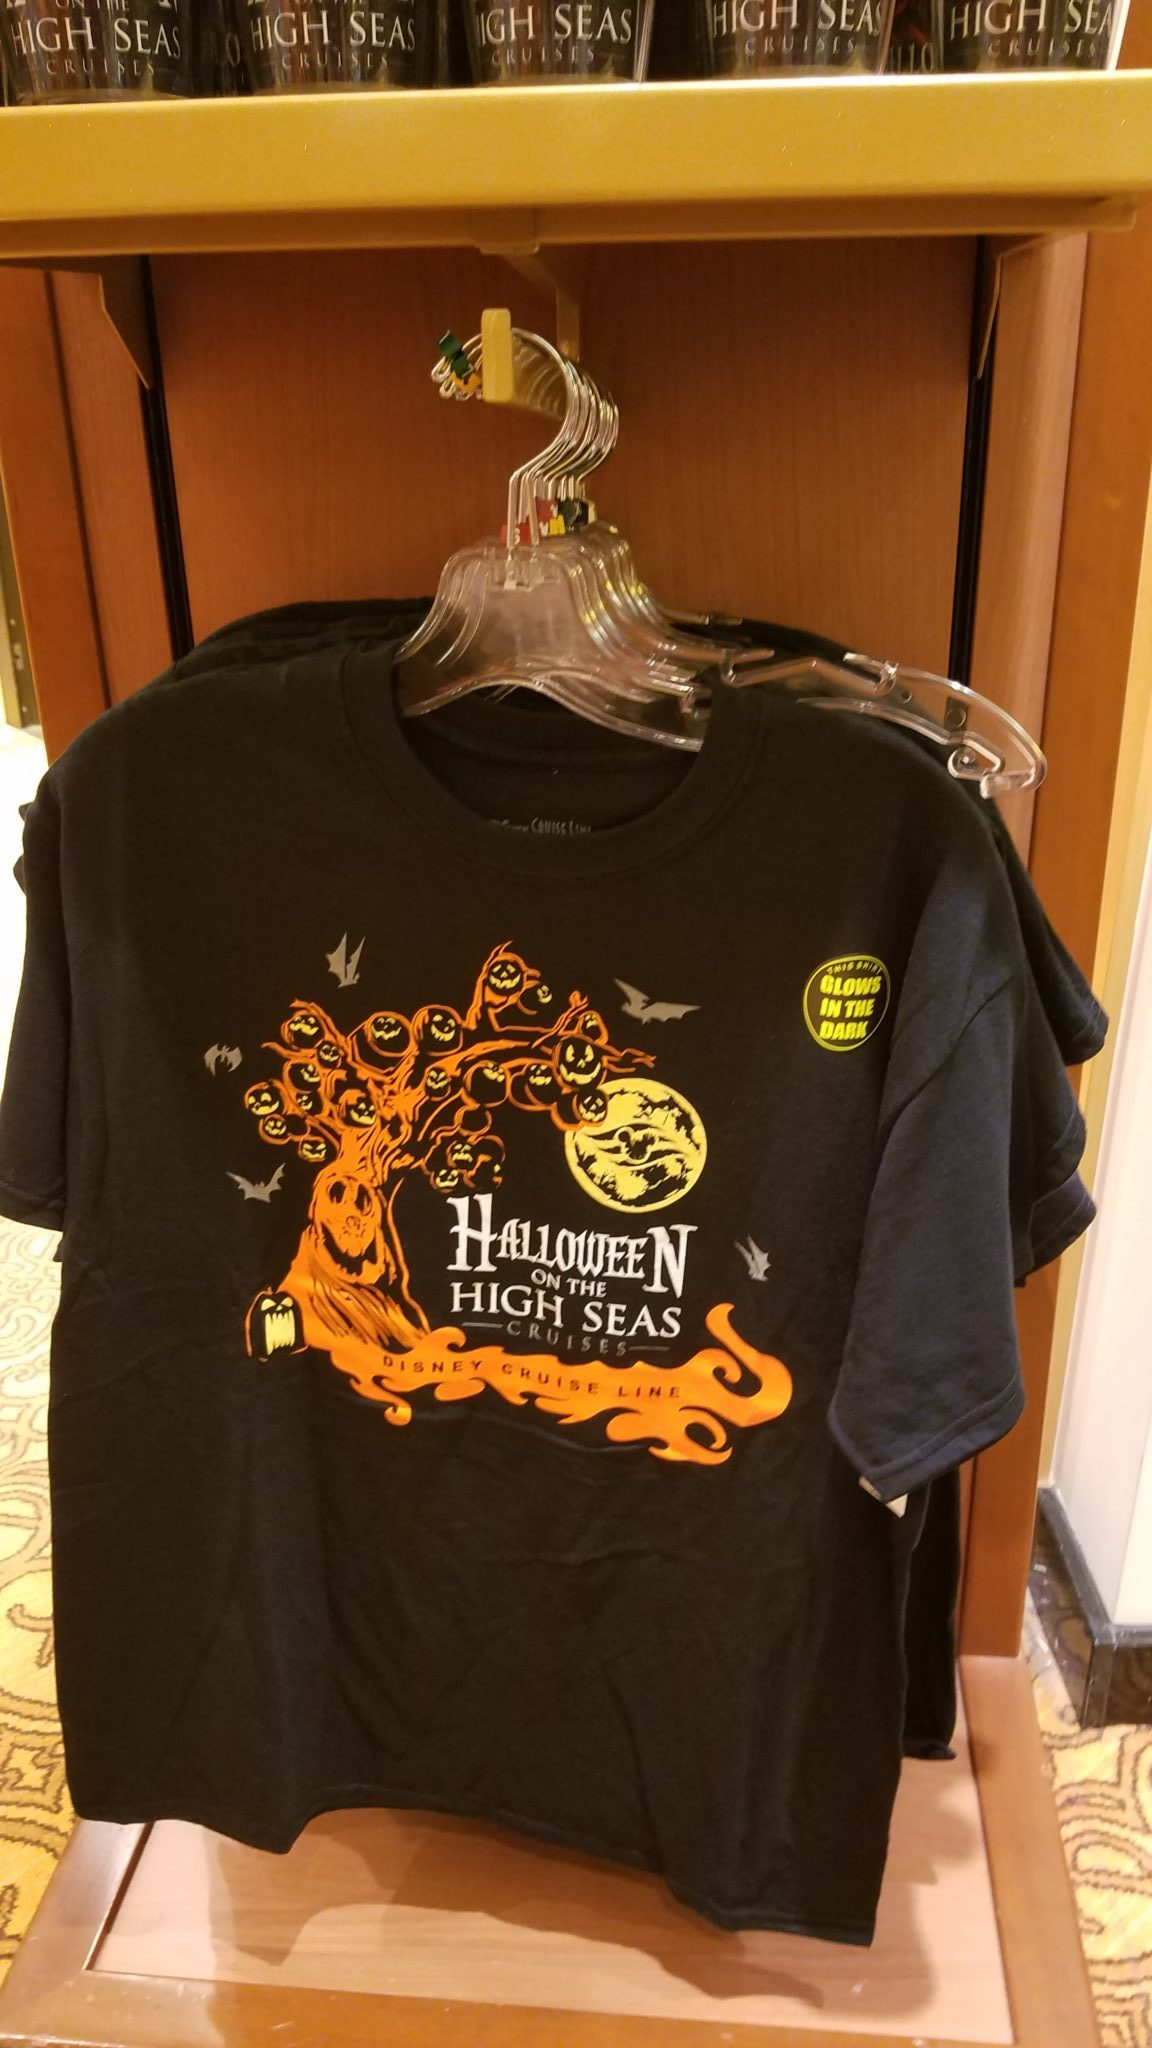 Disney Cruise Line Halloween Merchandise.New Halloween On The High Seas Merchandise Showing Up On Disney